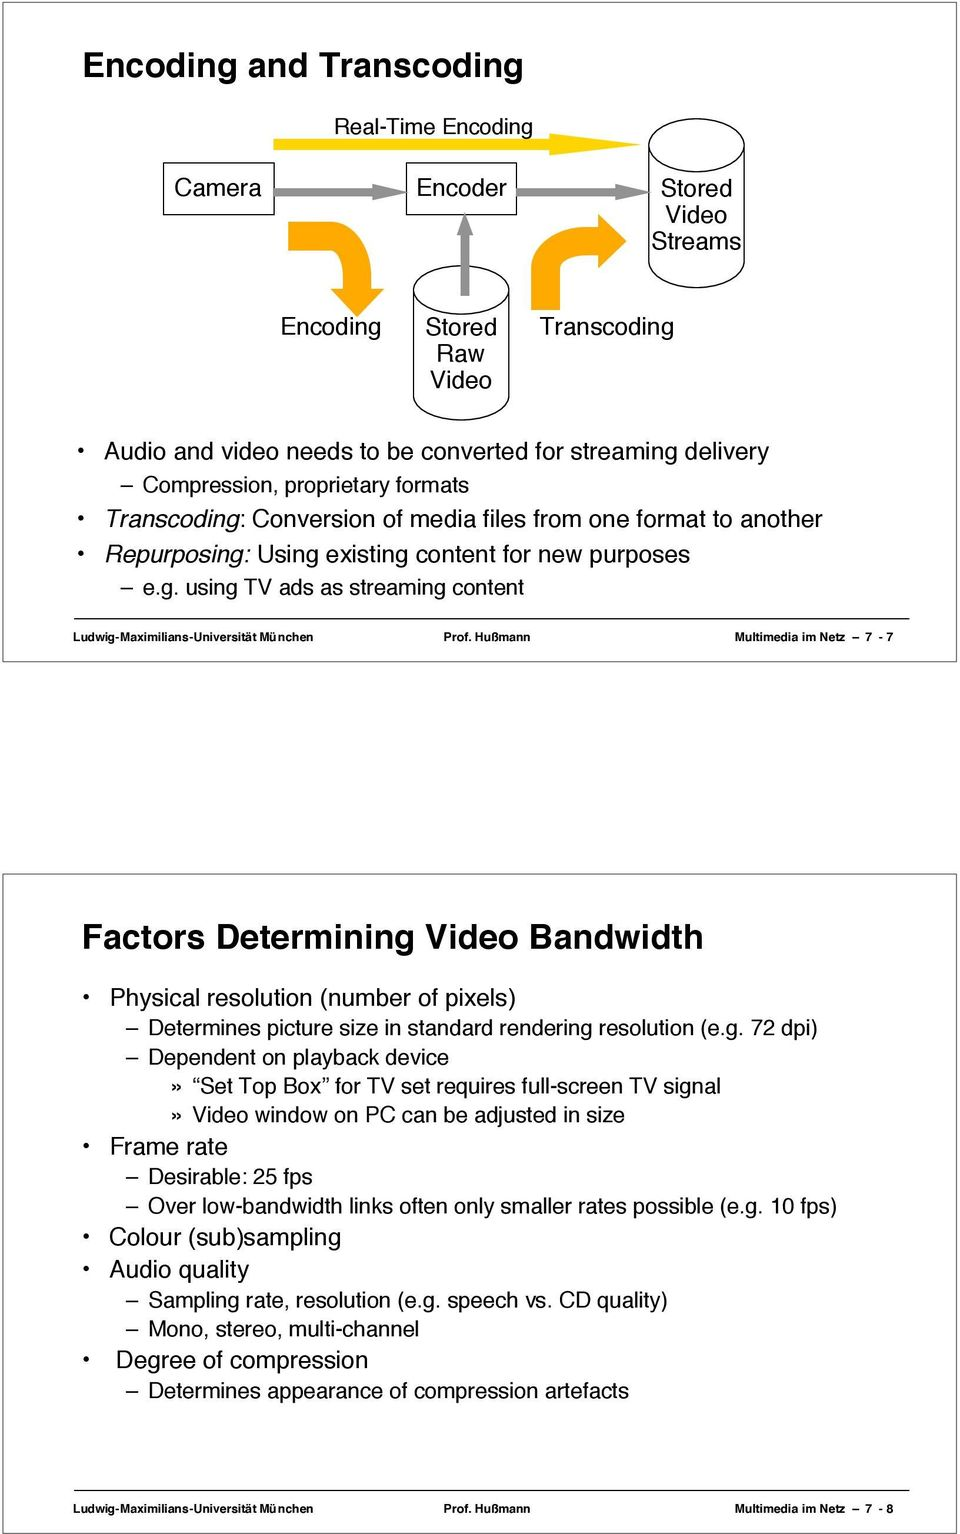 Hußmann Multimedia im Netz 7-7 Factors Determining